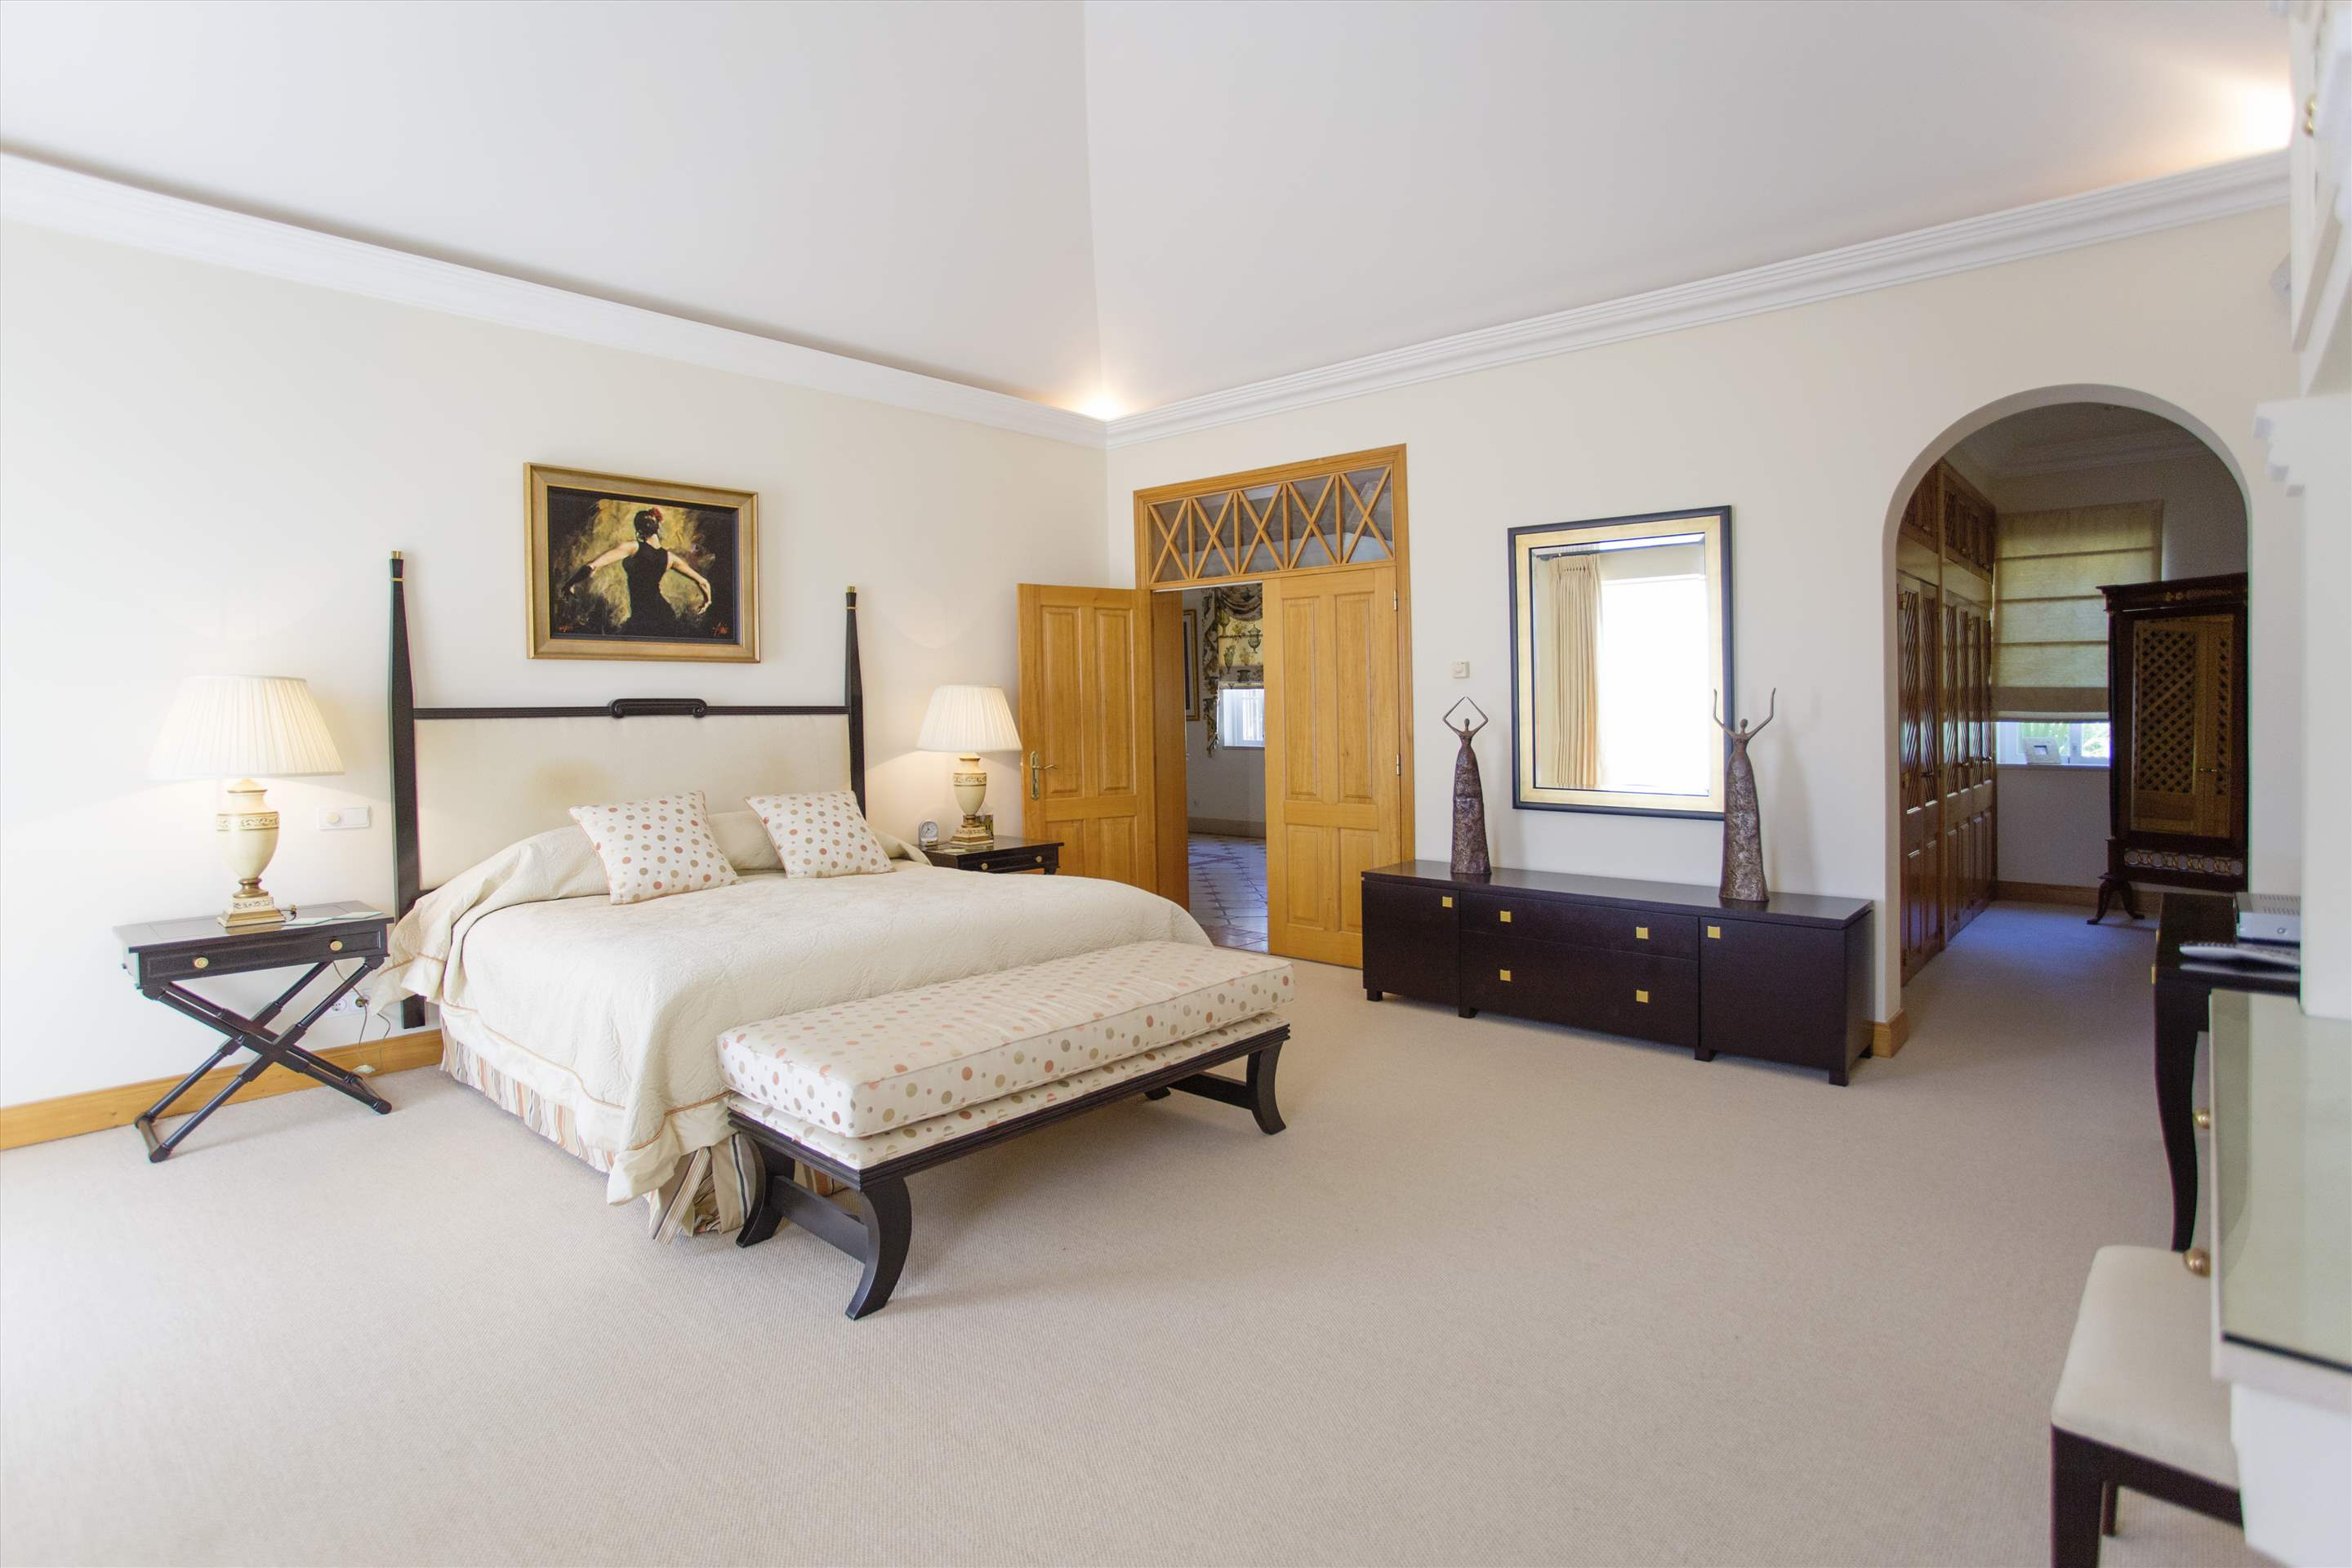 Villa Palmeiras Altas, 5 bedroom villa in Quinta do Lago, Algarve Photo #30